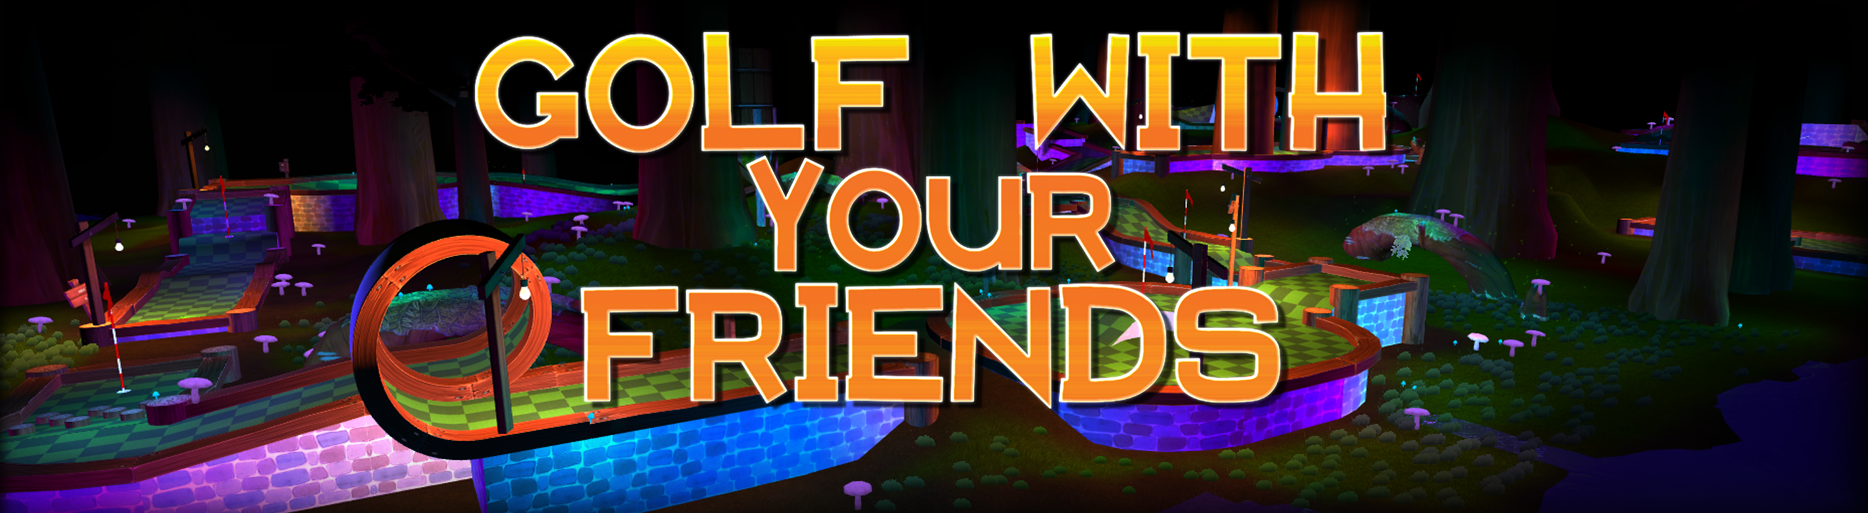 Blacklightinteractive – blacklightinteractive Golf With Friends